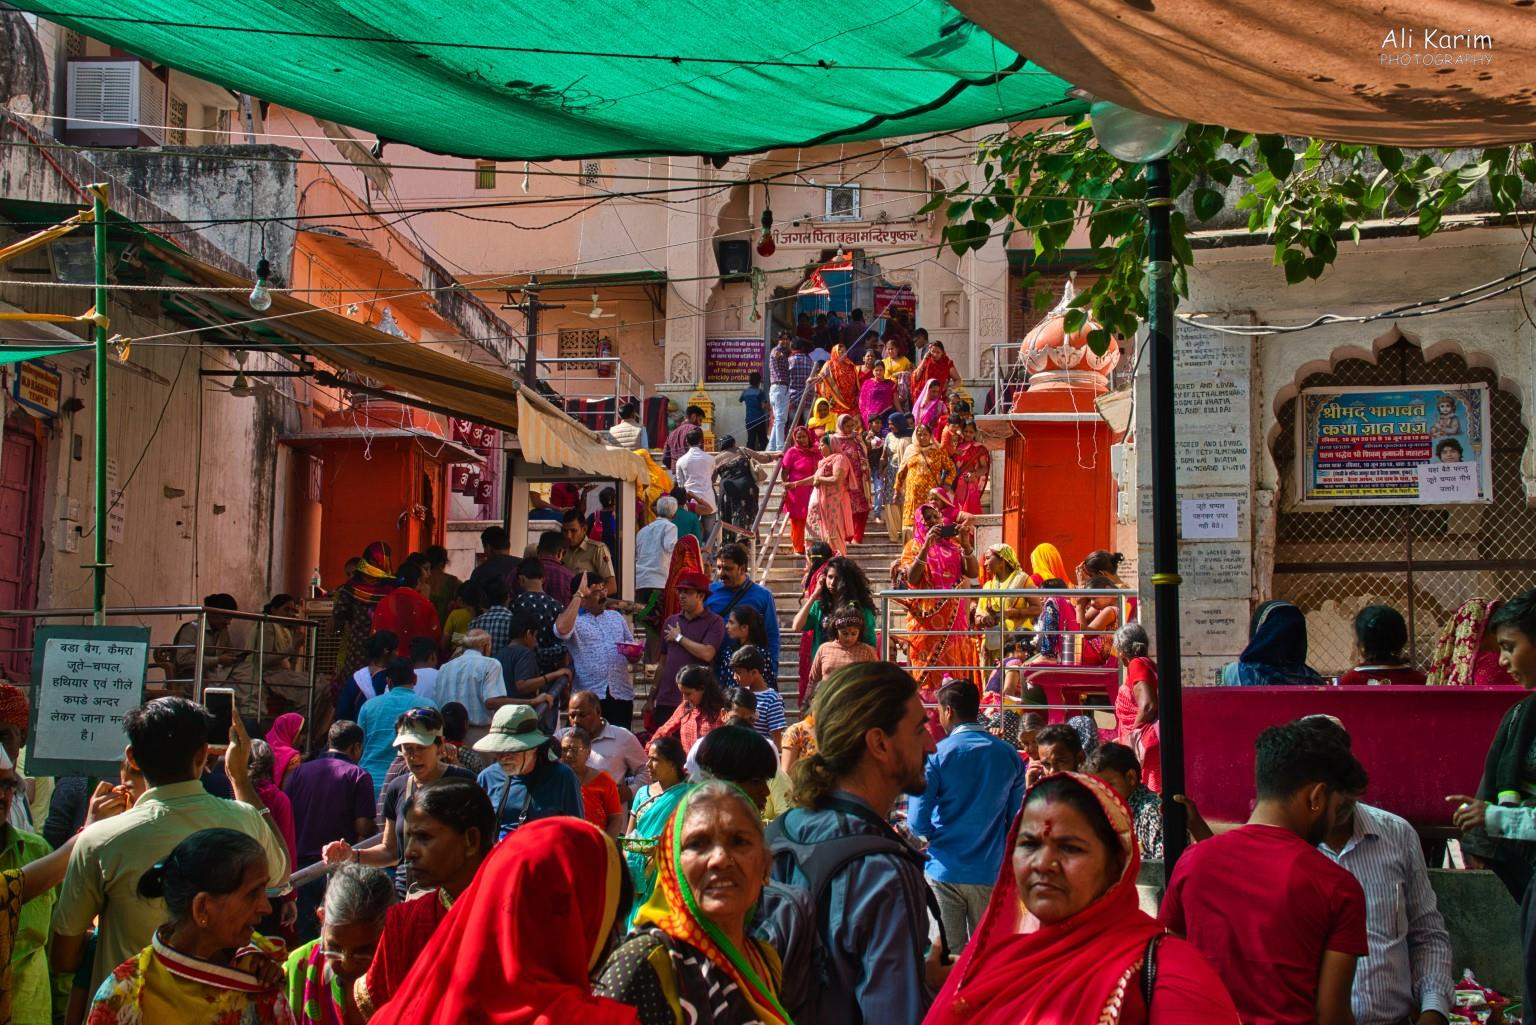 Pushkar, Rajasthan Busy entrance to the Brahma Temple during the day. The temple was very simple, small, and no photographs allowed inside